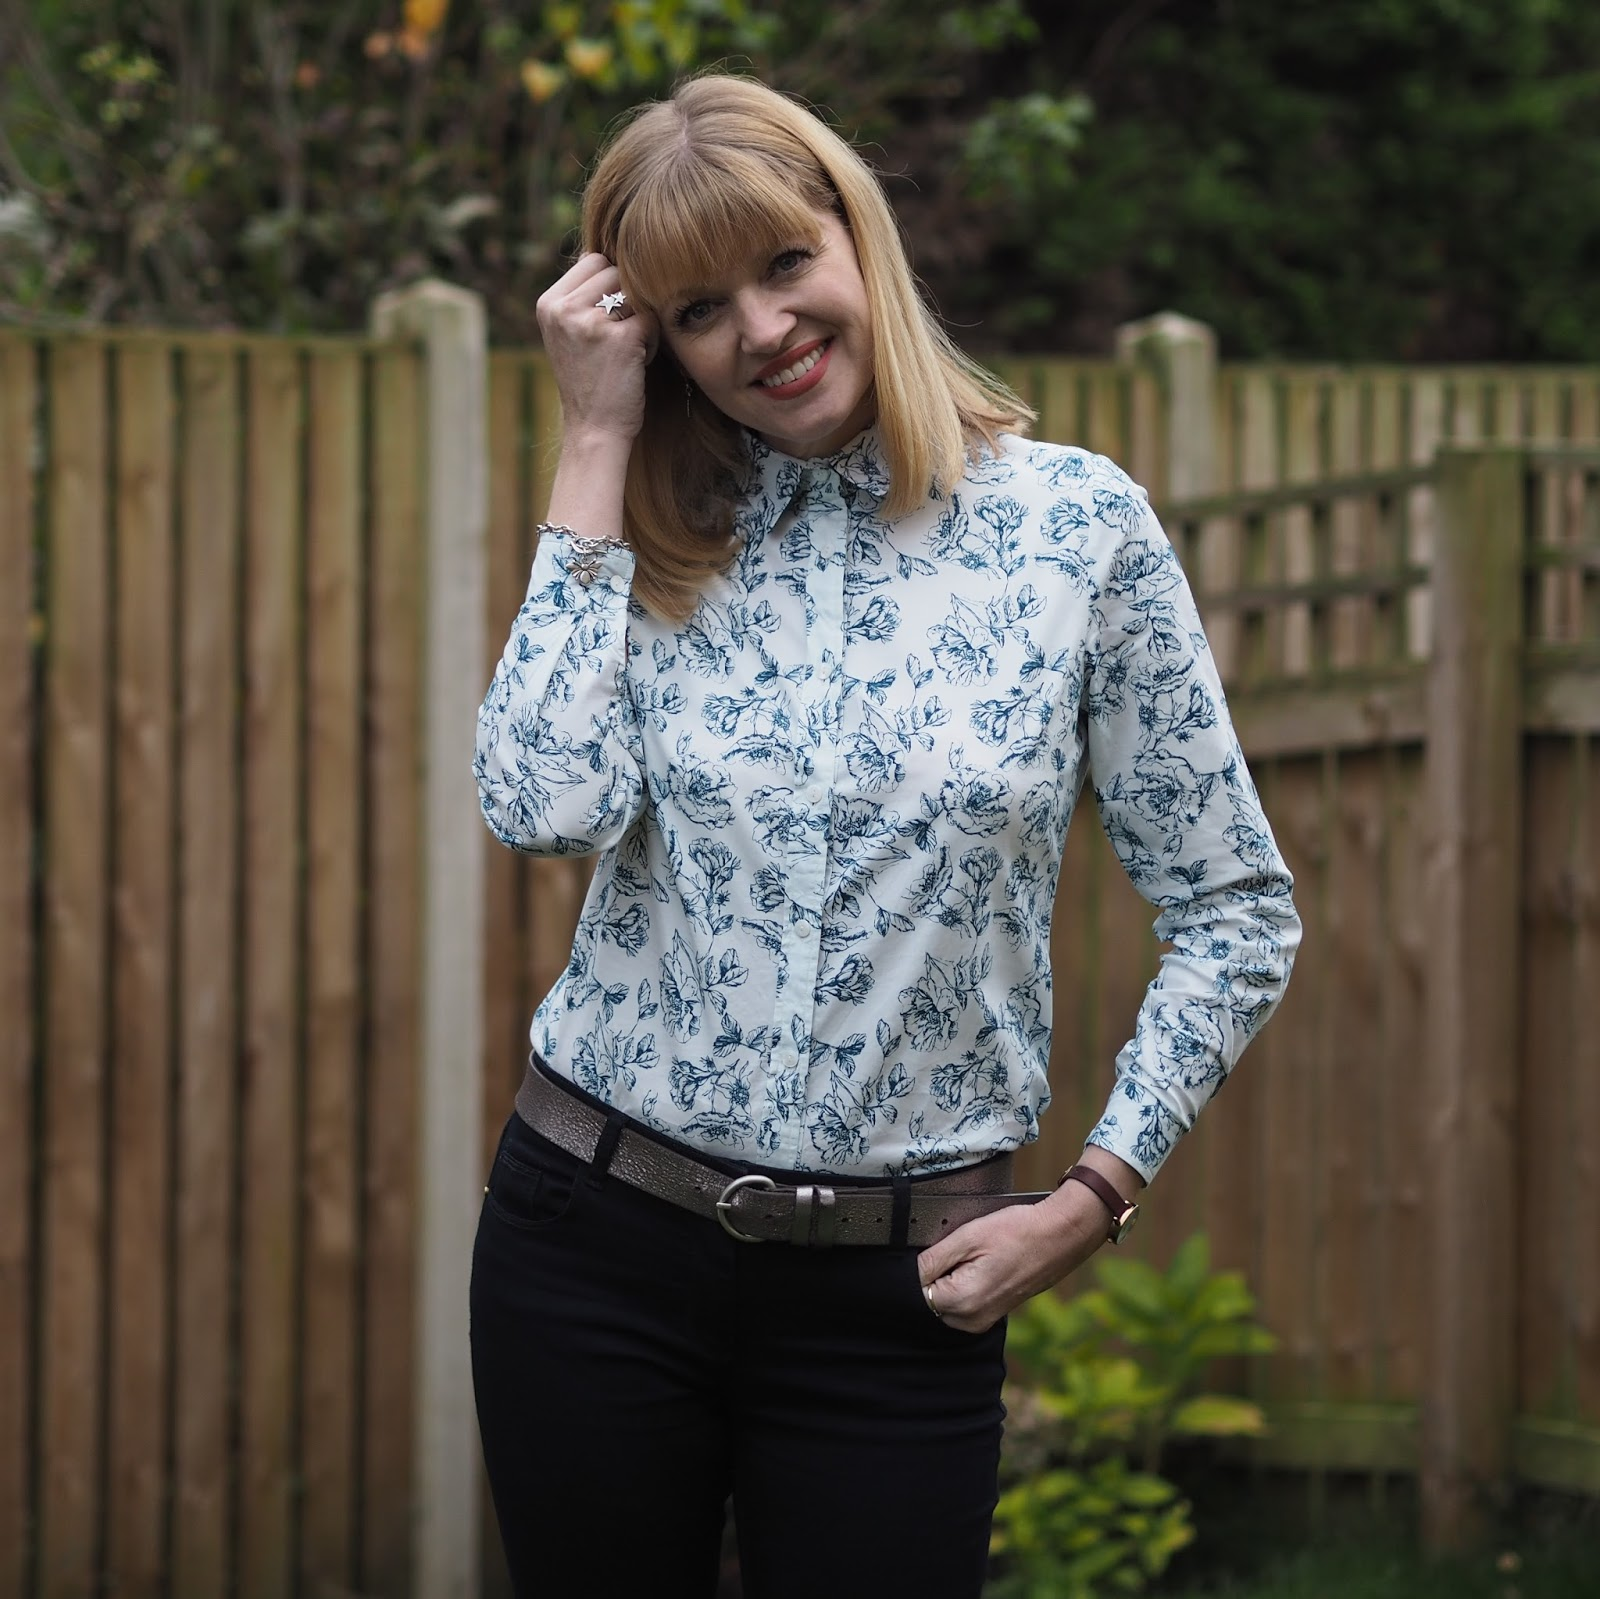 Tulchan shirt and skinny jeans and high-heeled boots